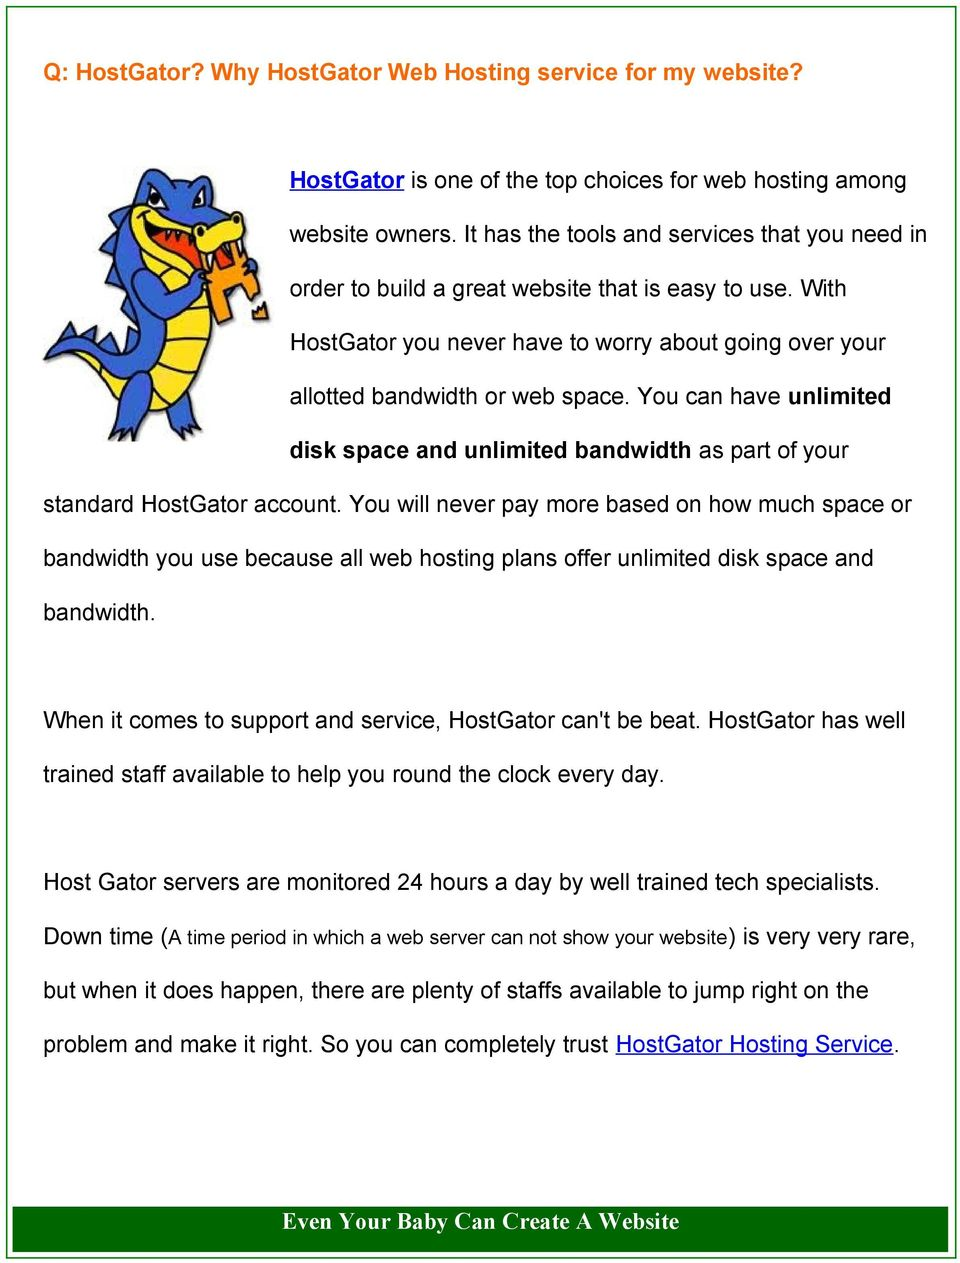 You can have unlimited disk space and unlimited bandwidth as part of your standard HostGator account.